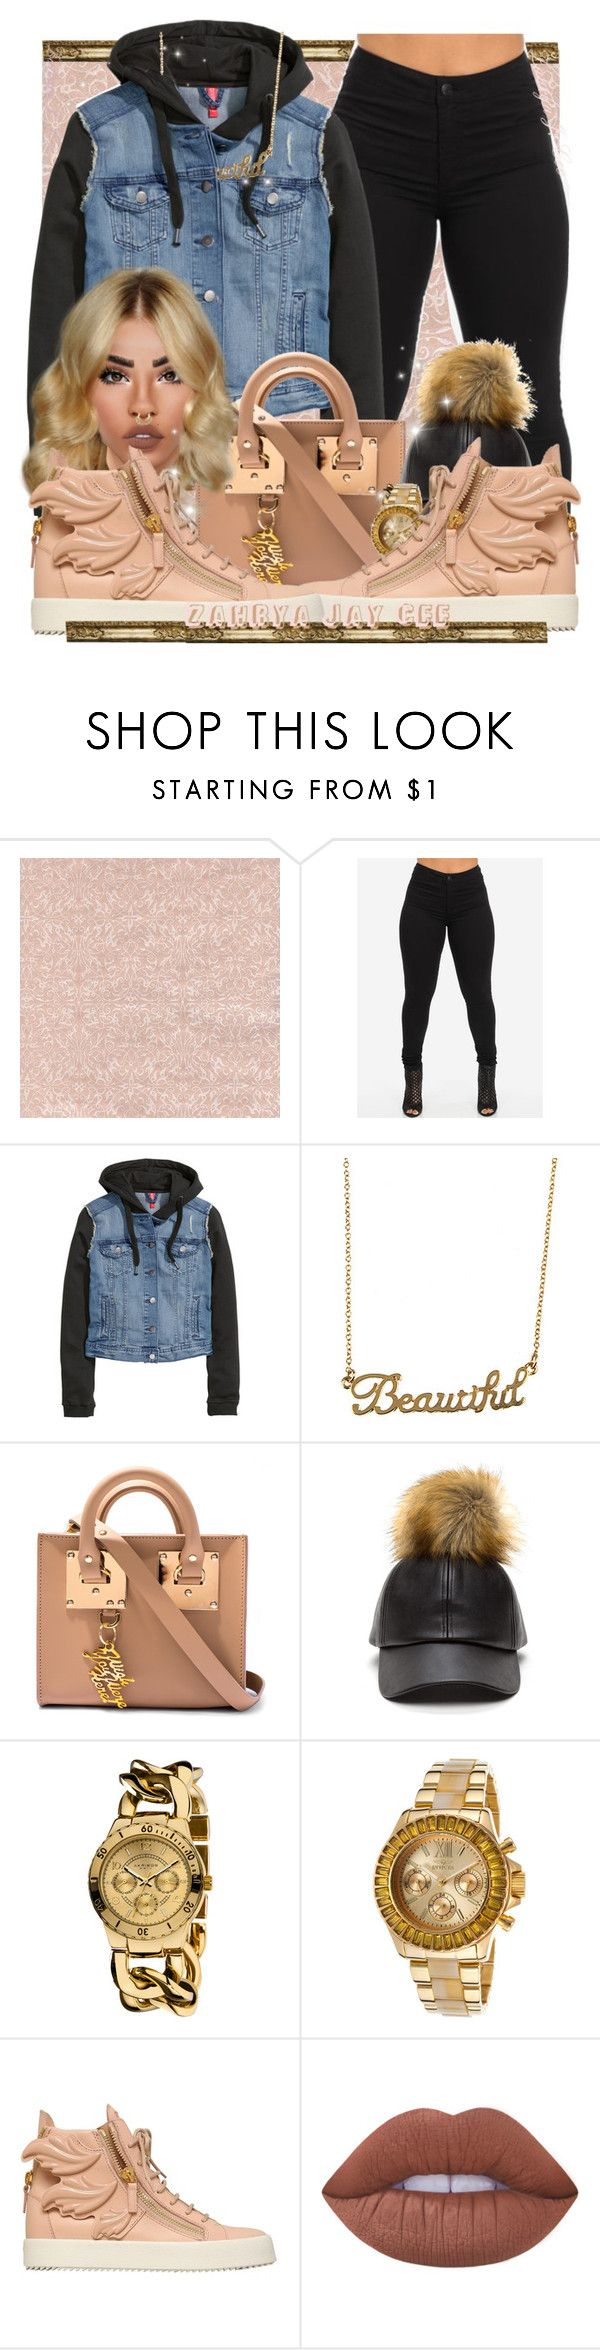 """""""Through The Wire By: Kanye"""" by sphereoflightmovement ❤ liked on Polyvore featuring H&M, Forever 21, Sophie Hulme, Akribos XXIV, Invicta, Giuseppe Zanotti, Lime Crime and Charlotte Russe"""